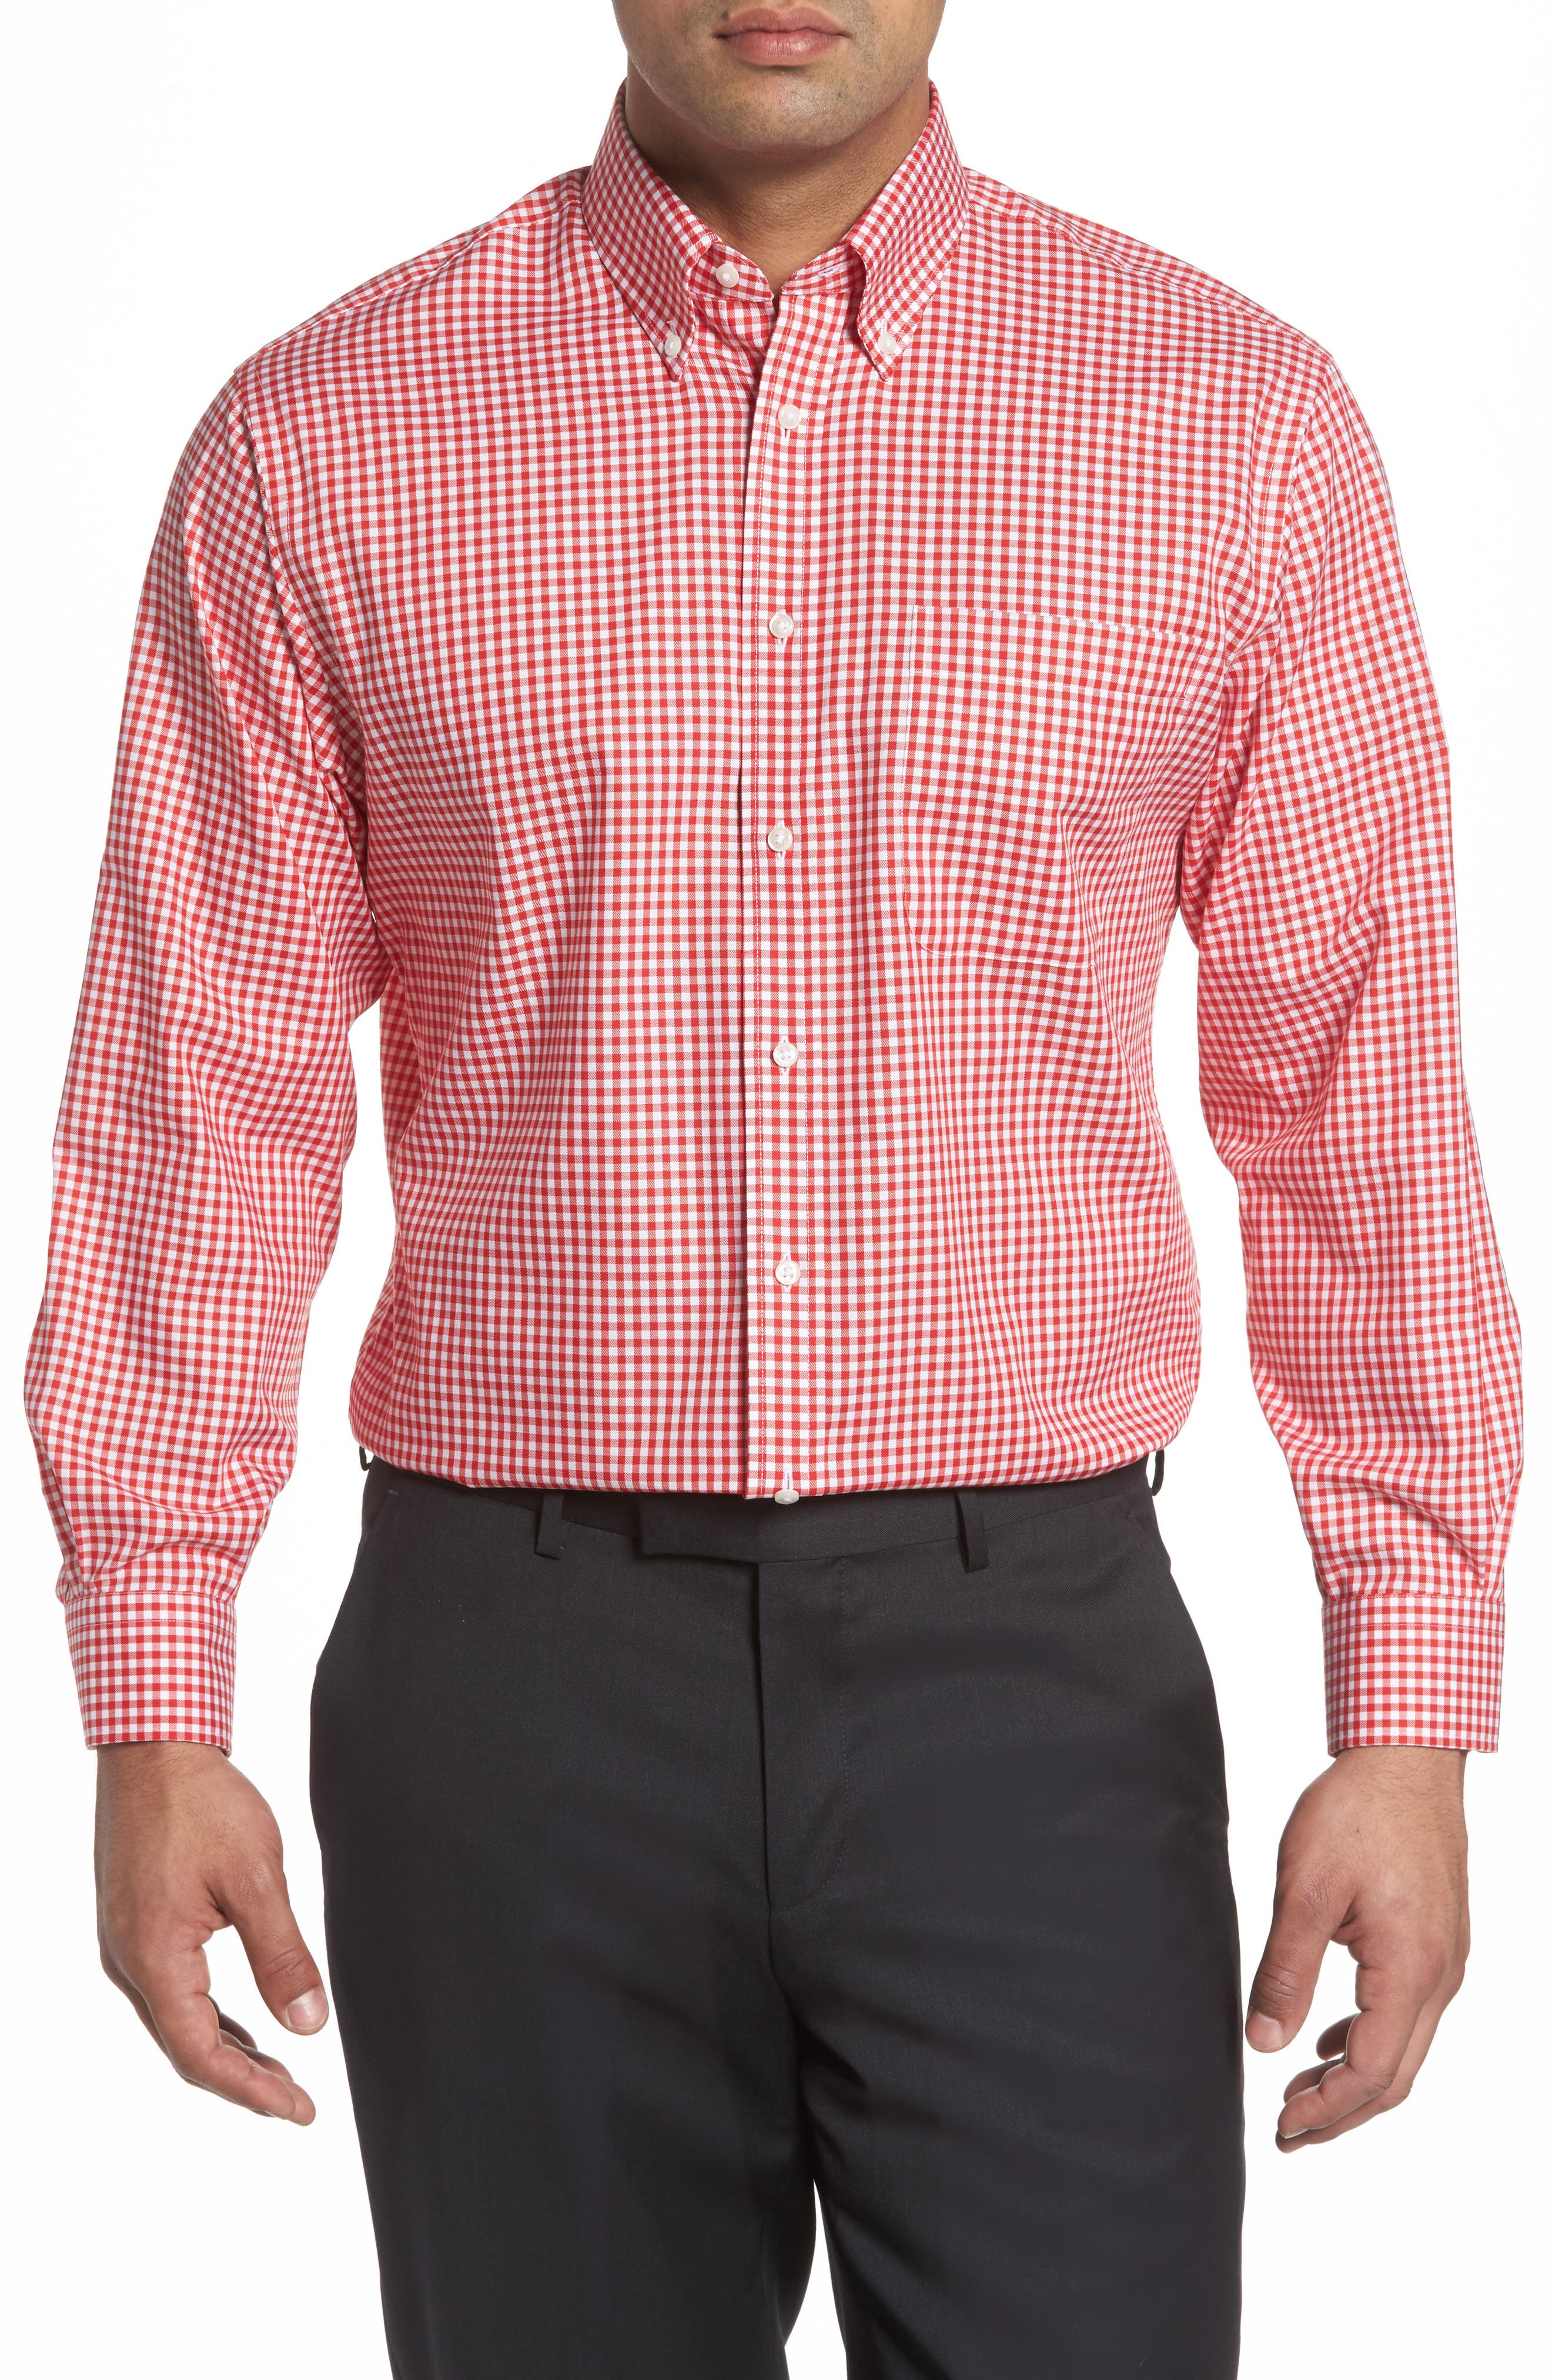 Alternate Image 2  - Nordstrom Men's Shop Classic Fit Non-Iron Gingham Dress Shirt (Online Only)